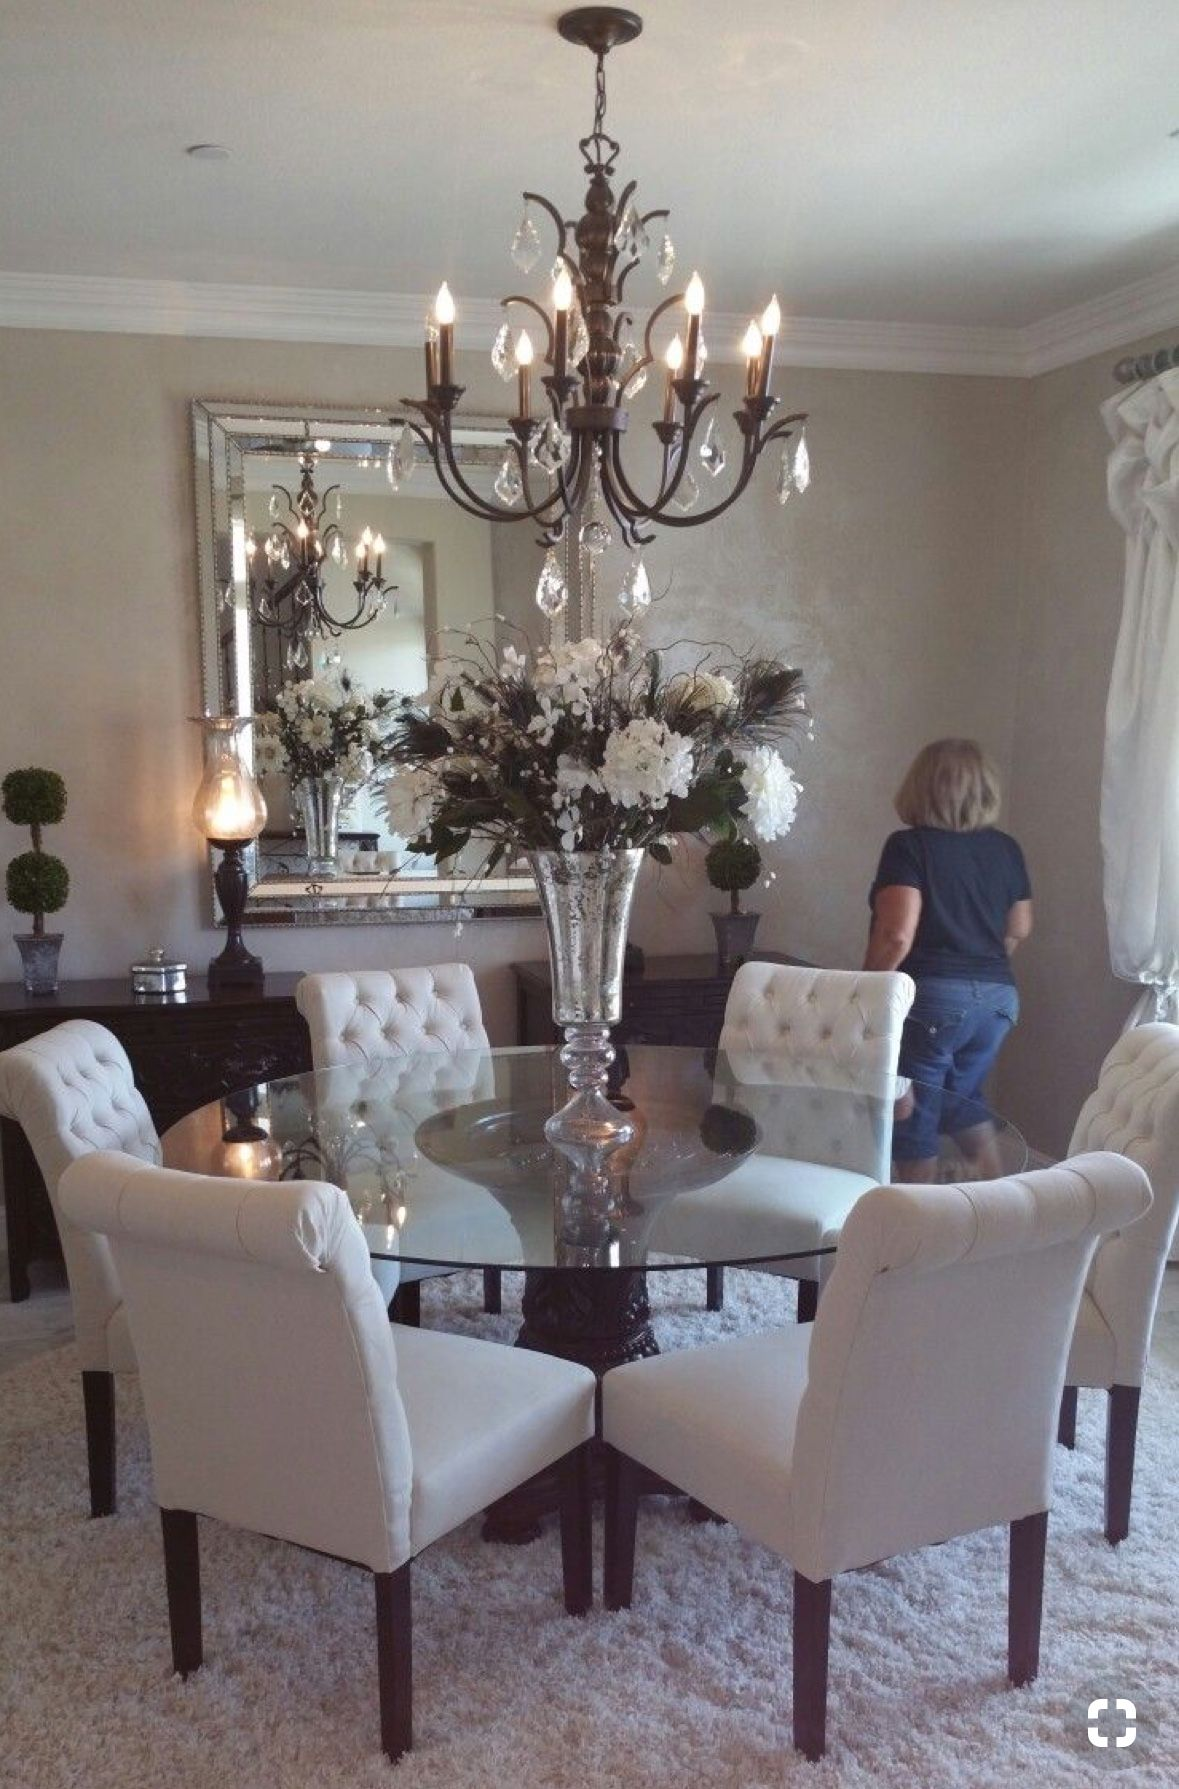 Pin By Pacogirl33 On Grey Interior Design Dinning Room Decor Dining Room Design Home